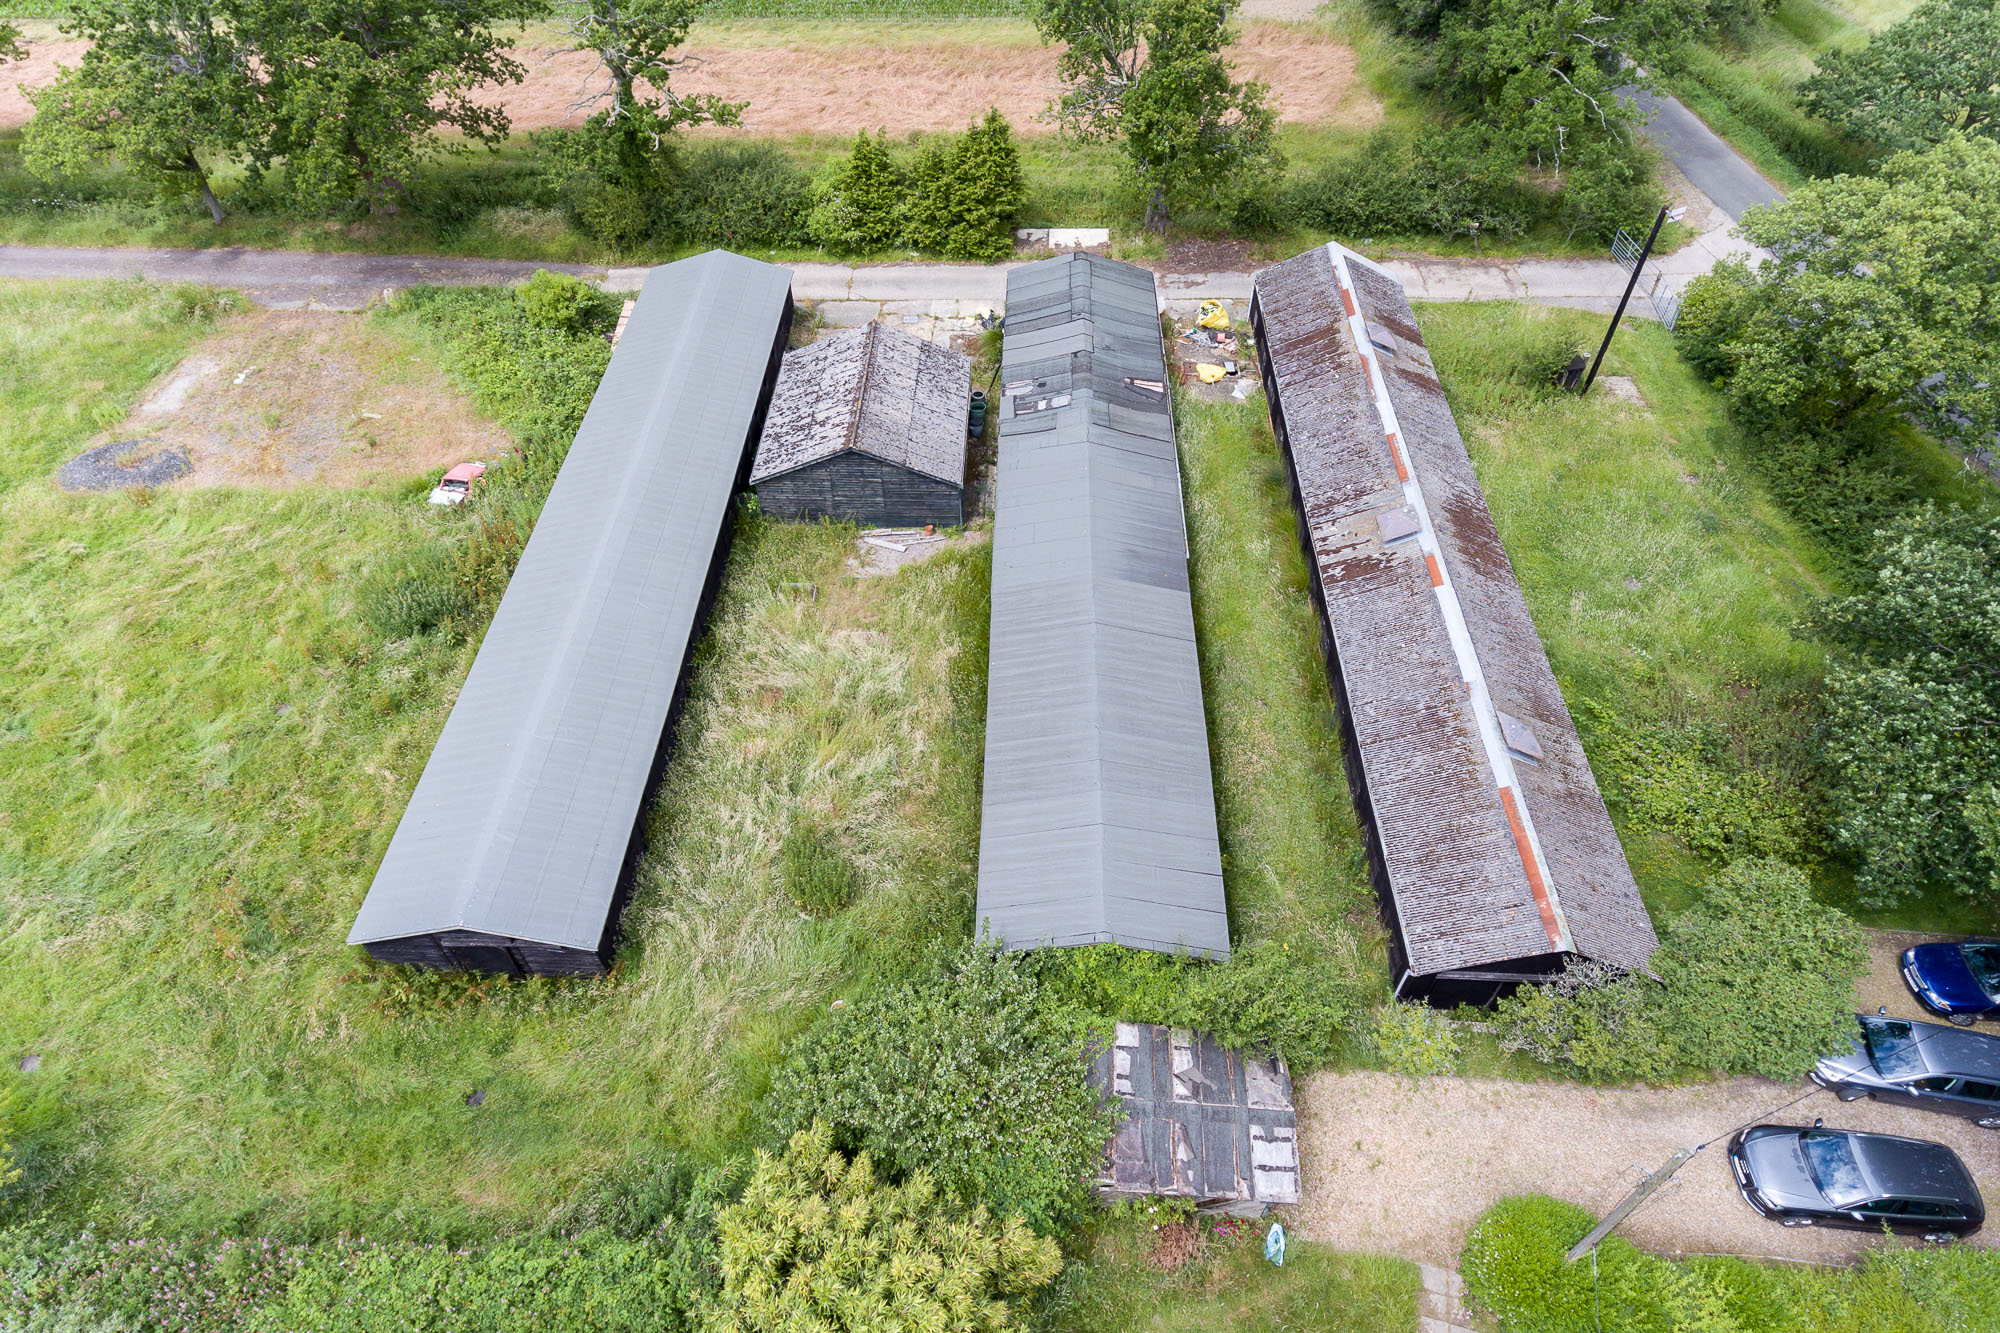 jonathan bond photography, aerial drone view of roofs for commercial buildings in fields